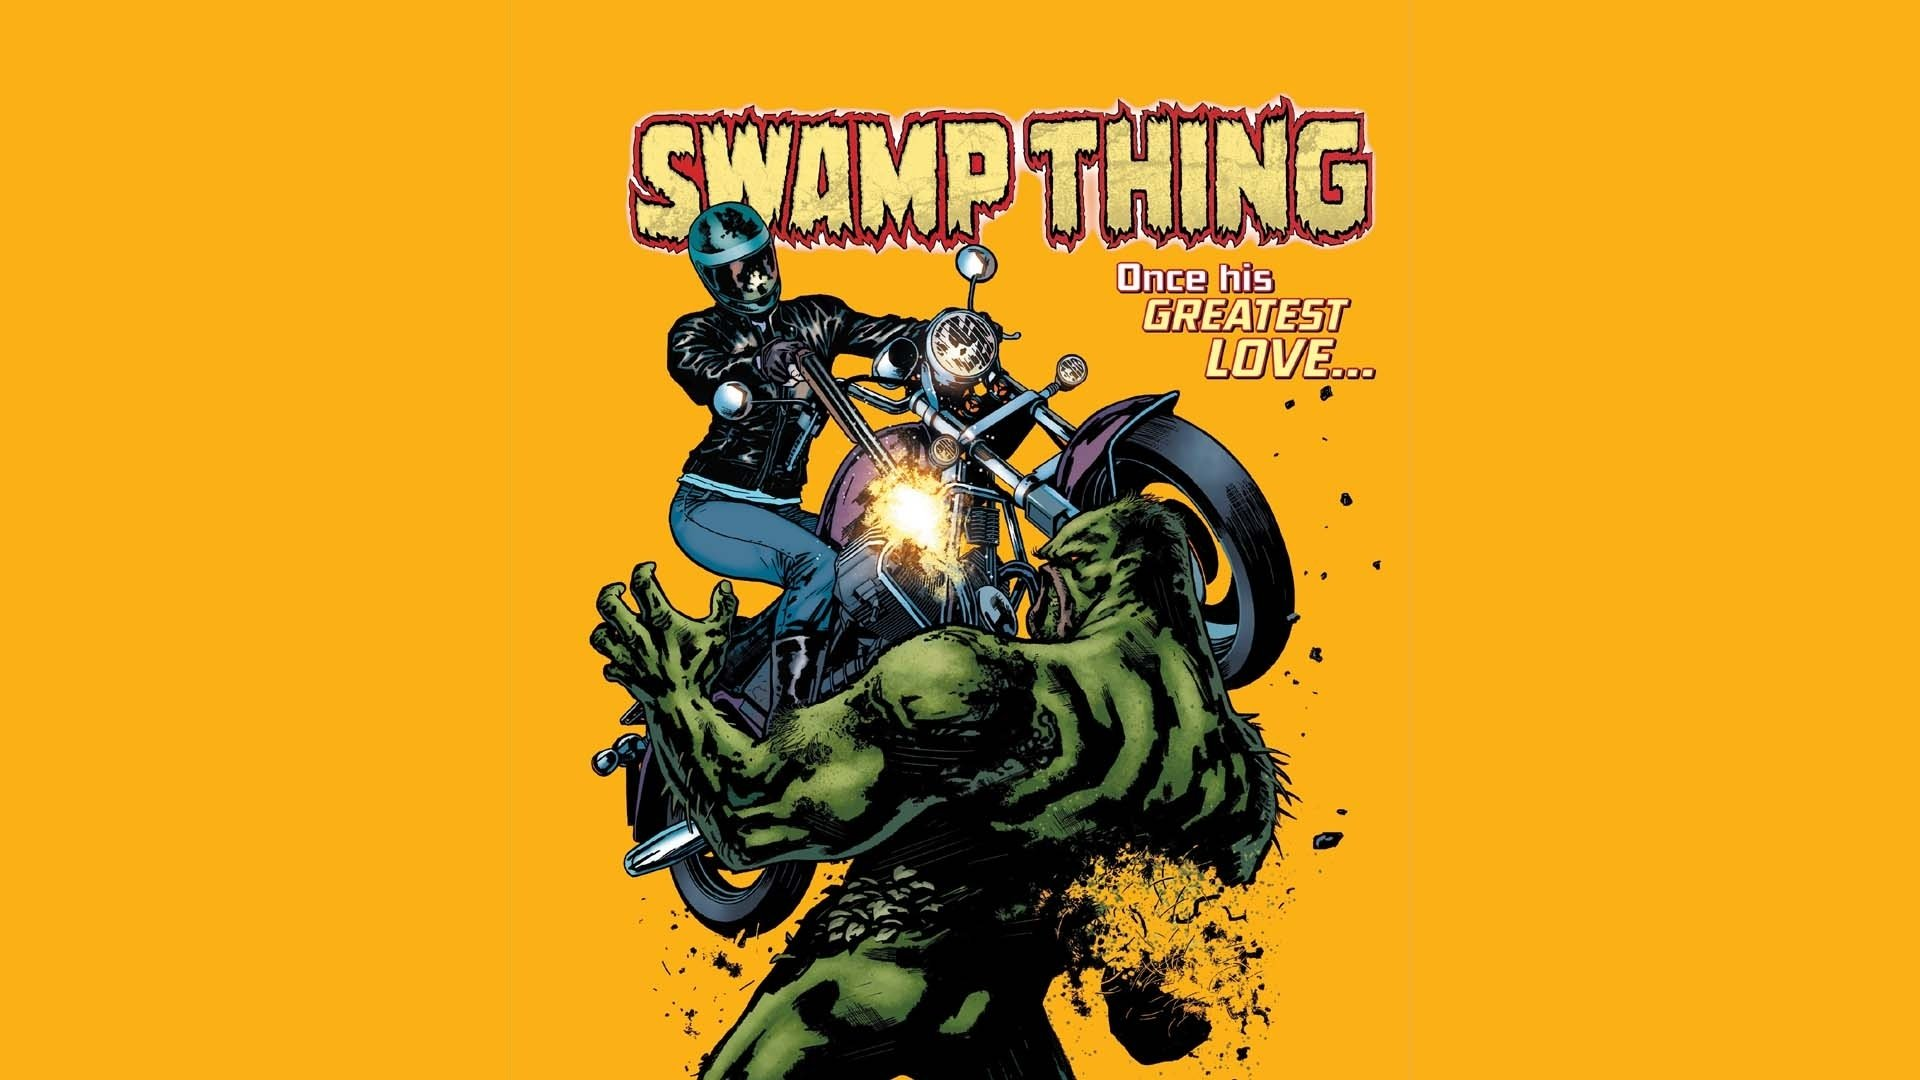 Robin Iphone Wallpaper Swamp Thing Full Hd Wallpaper And Background Image